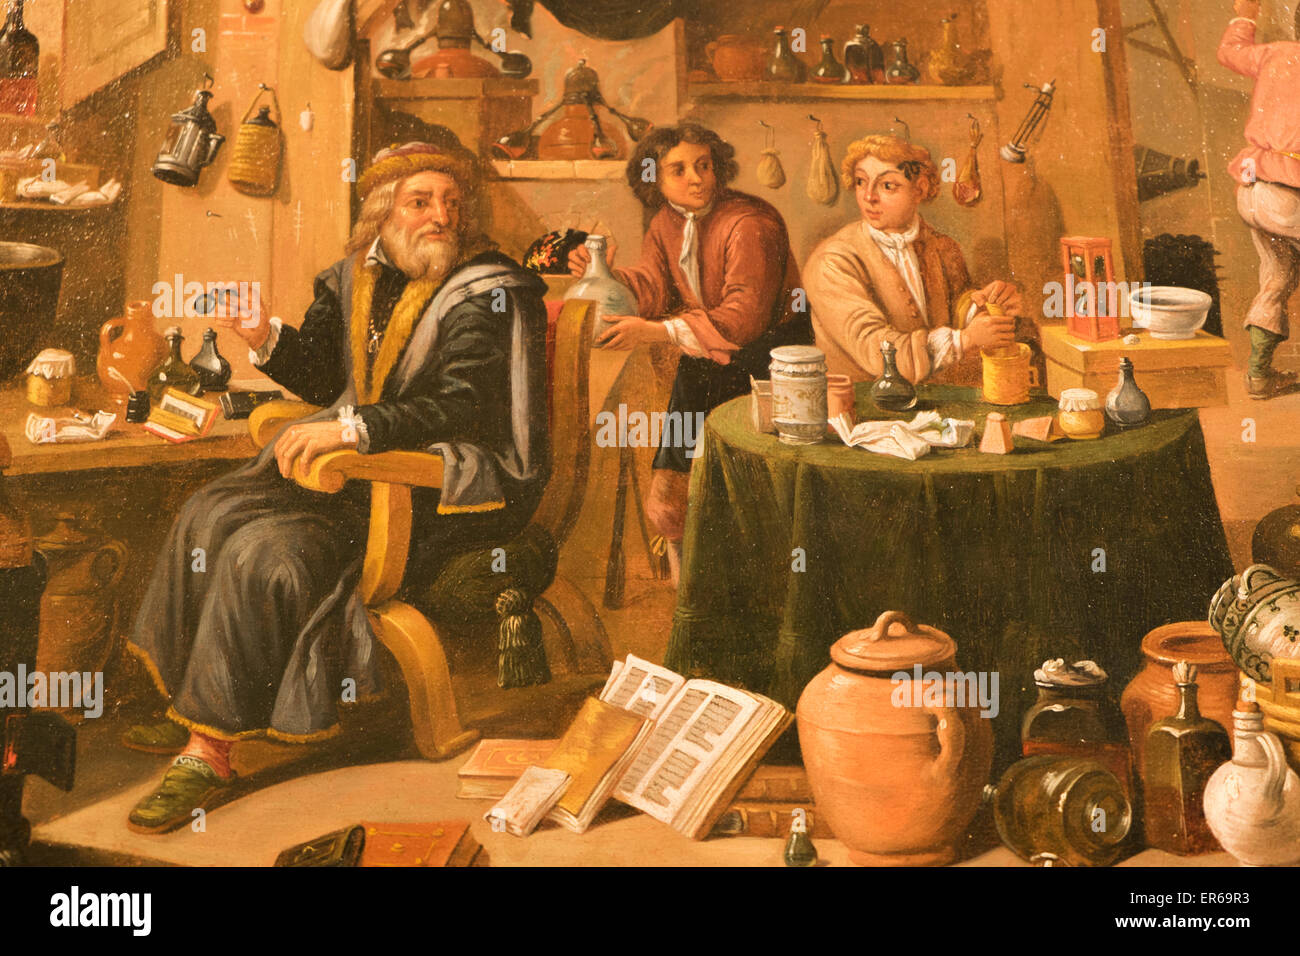 England, London, The Wellcome Collection, The Reading Room, 17th century Painting titled 'An Alchemist in His - Stock Image